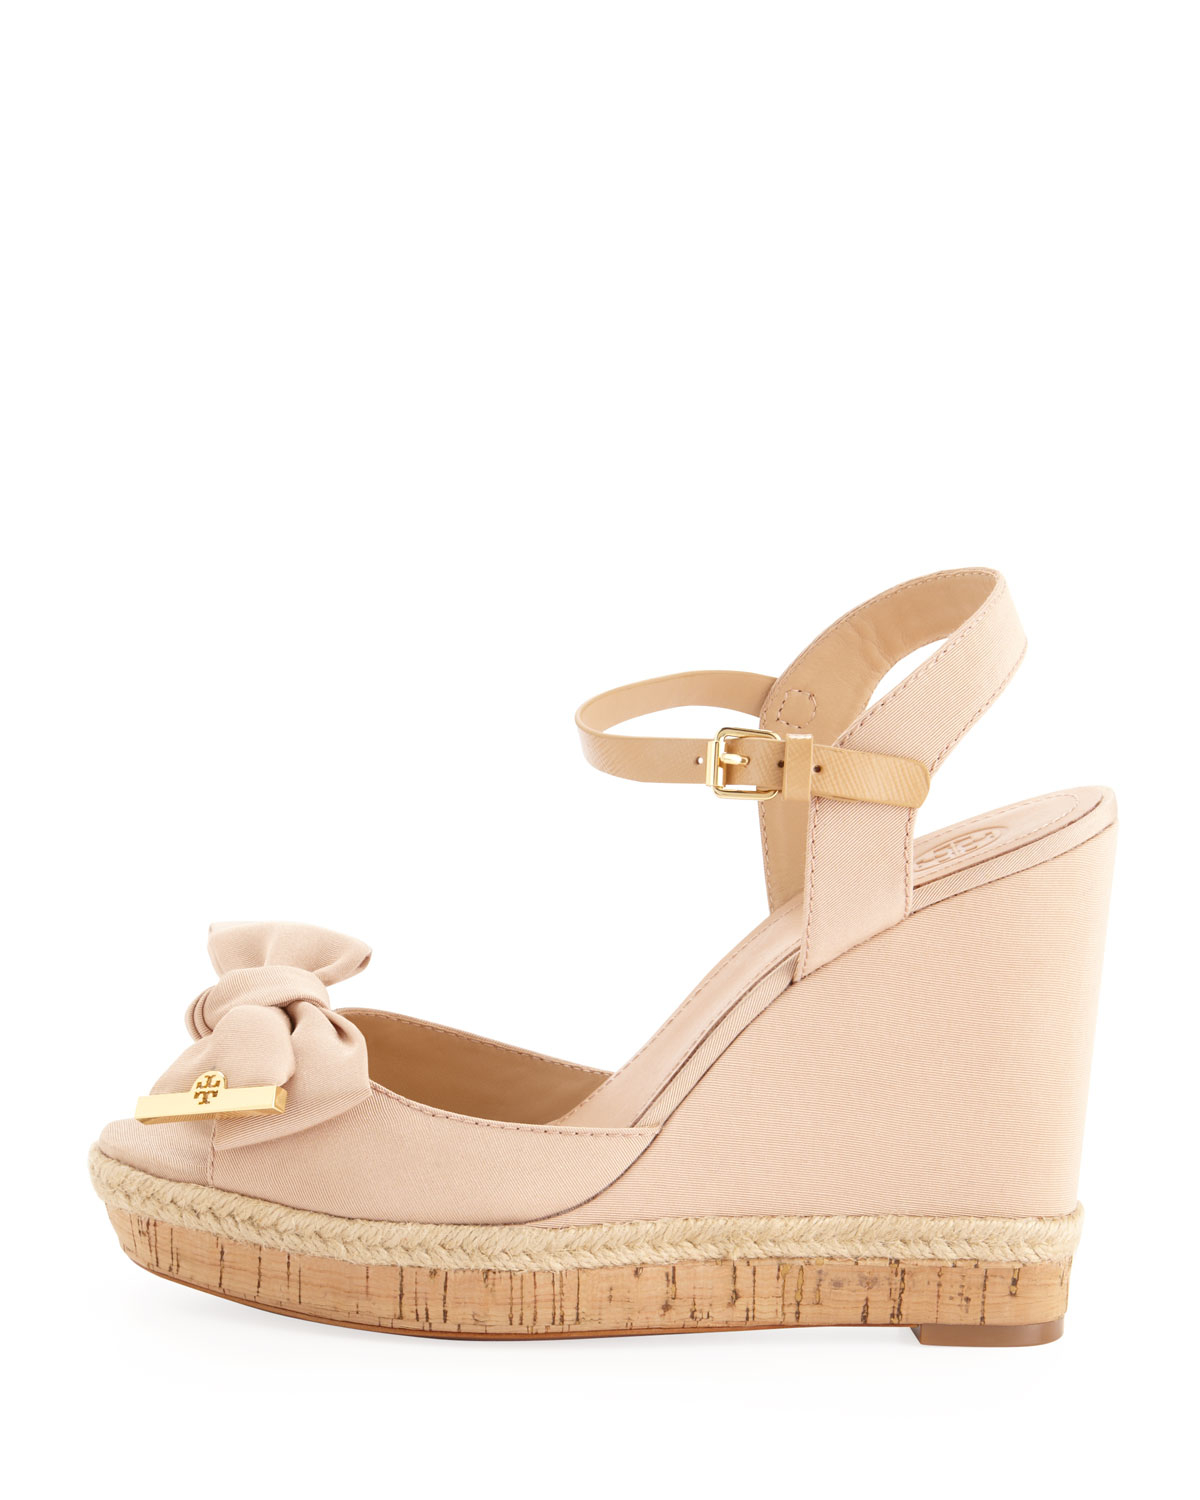 f56c0e2ff57 Lyst - Tory Burch Penny Faille Bow Wedge in Pink